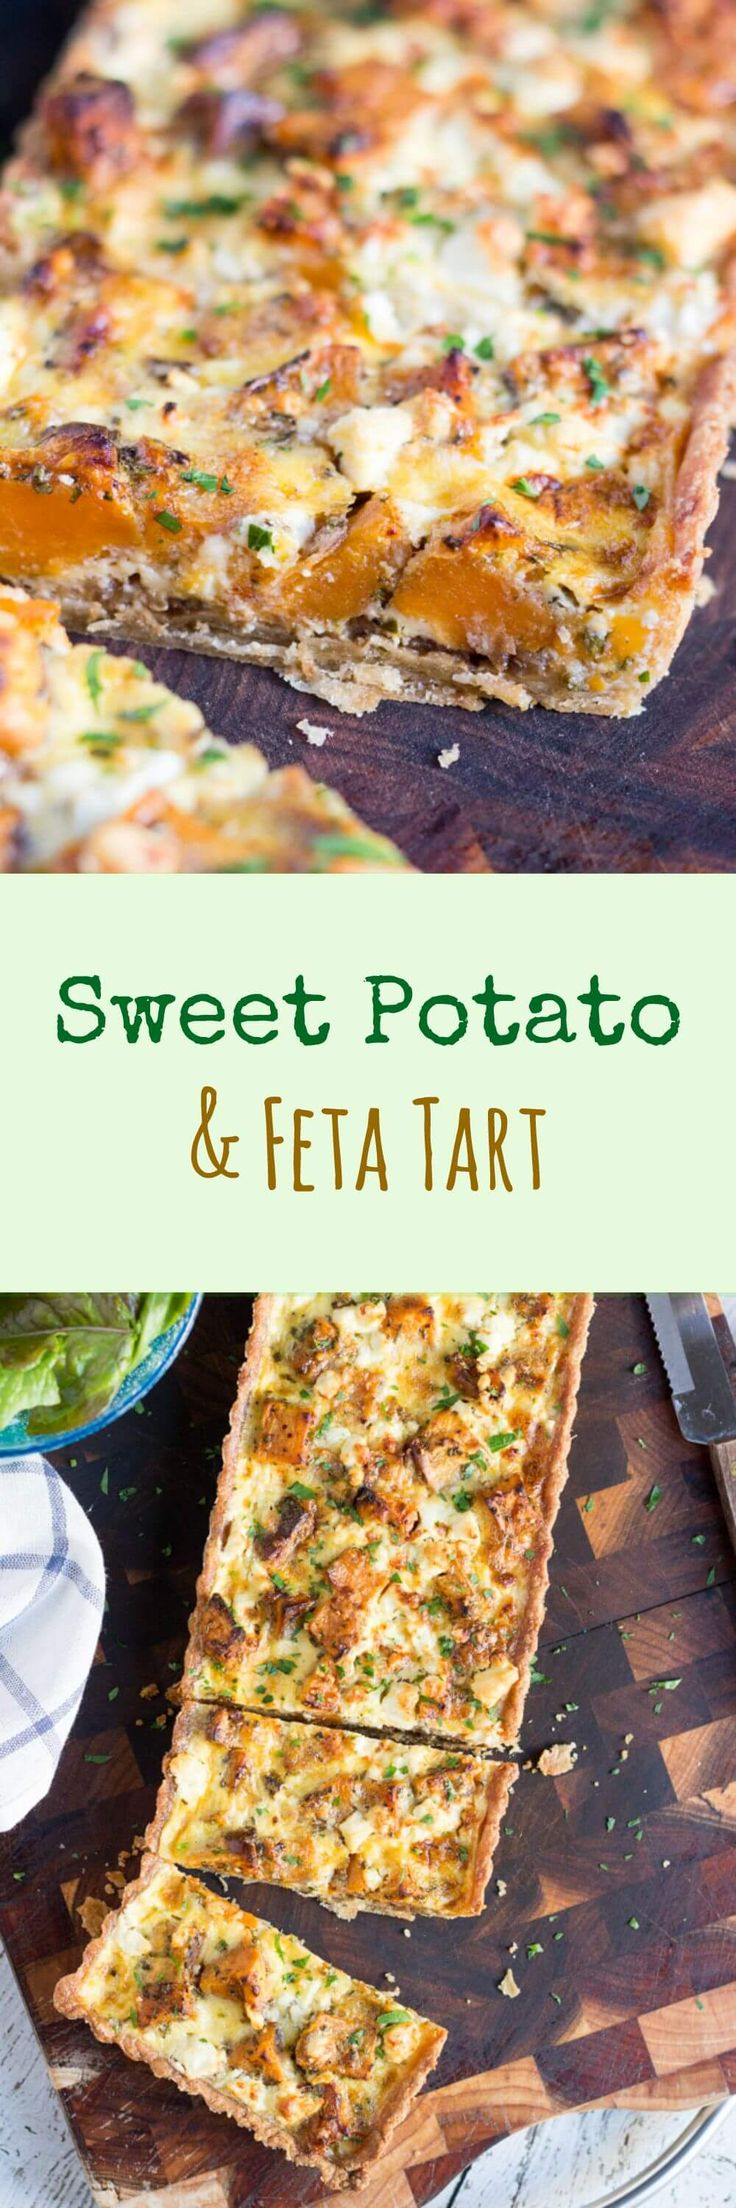 Sweet Potato and Feta Tart, with its hidden layer of caramelised onion, is the perfect vegetarian dish for an easy lunch or a light dinner.